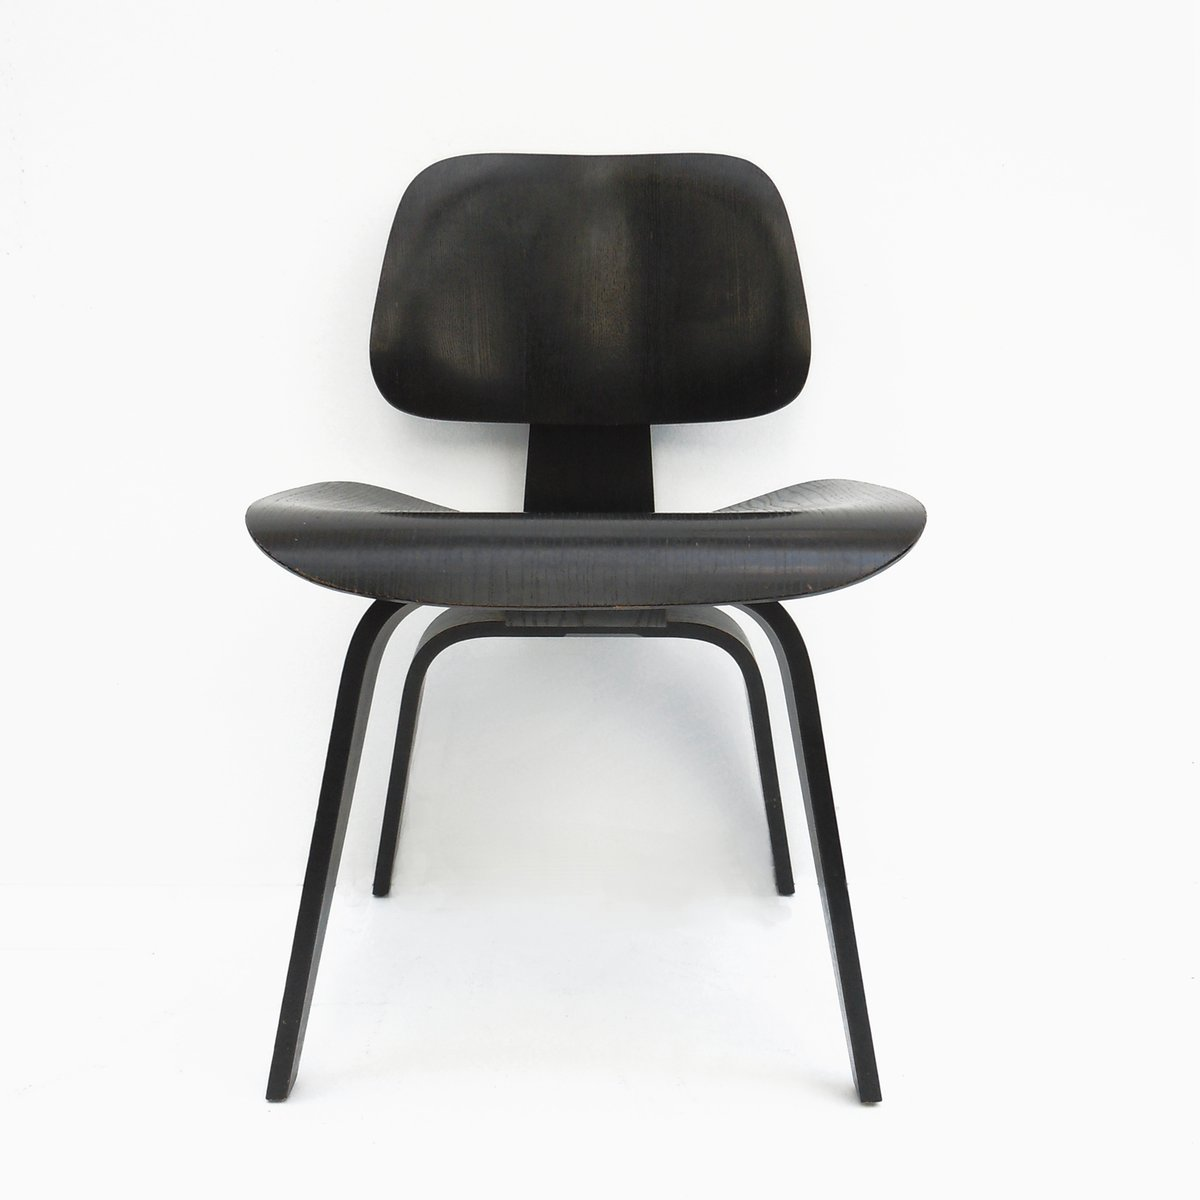 vintage dcw black dining chair by charles ray eames for herman miller 1950s for sale at pamono. Black Bedroom Furniture Sets. Home Design Ideas